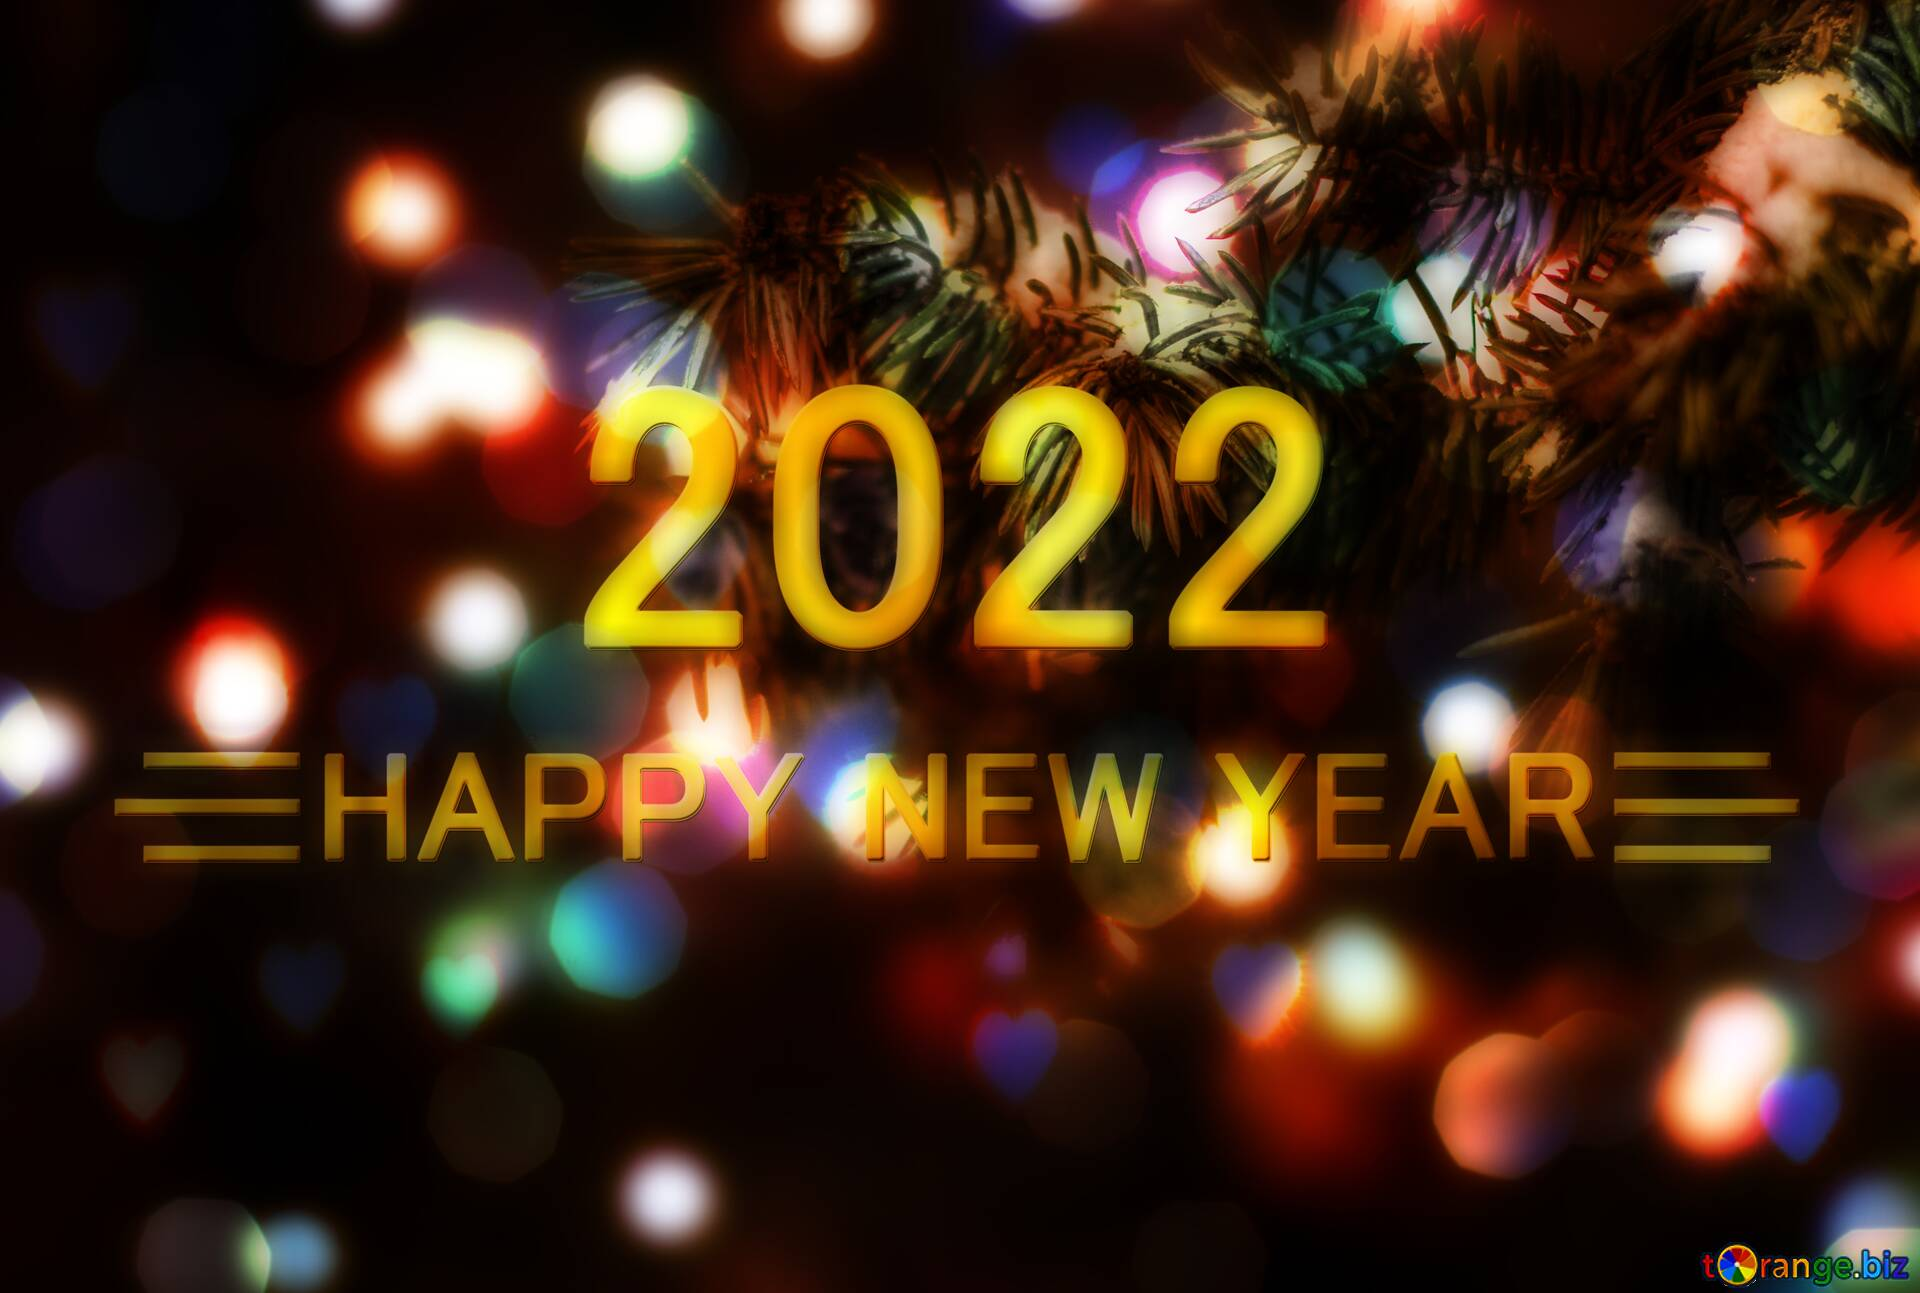 Download Free Picture Christmas Desktop Happy New Year 2021 On Cc By License Free Image Stock Torange Biz Fx 213526